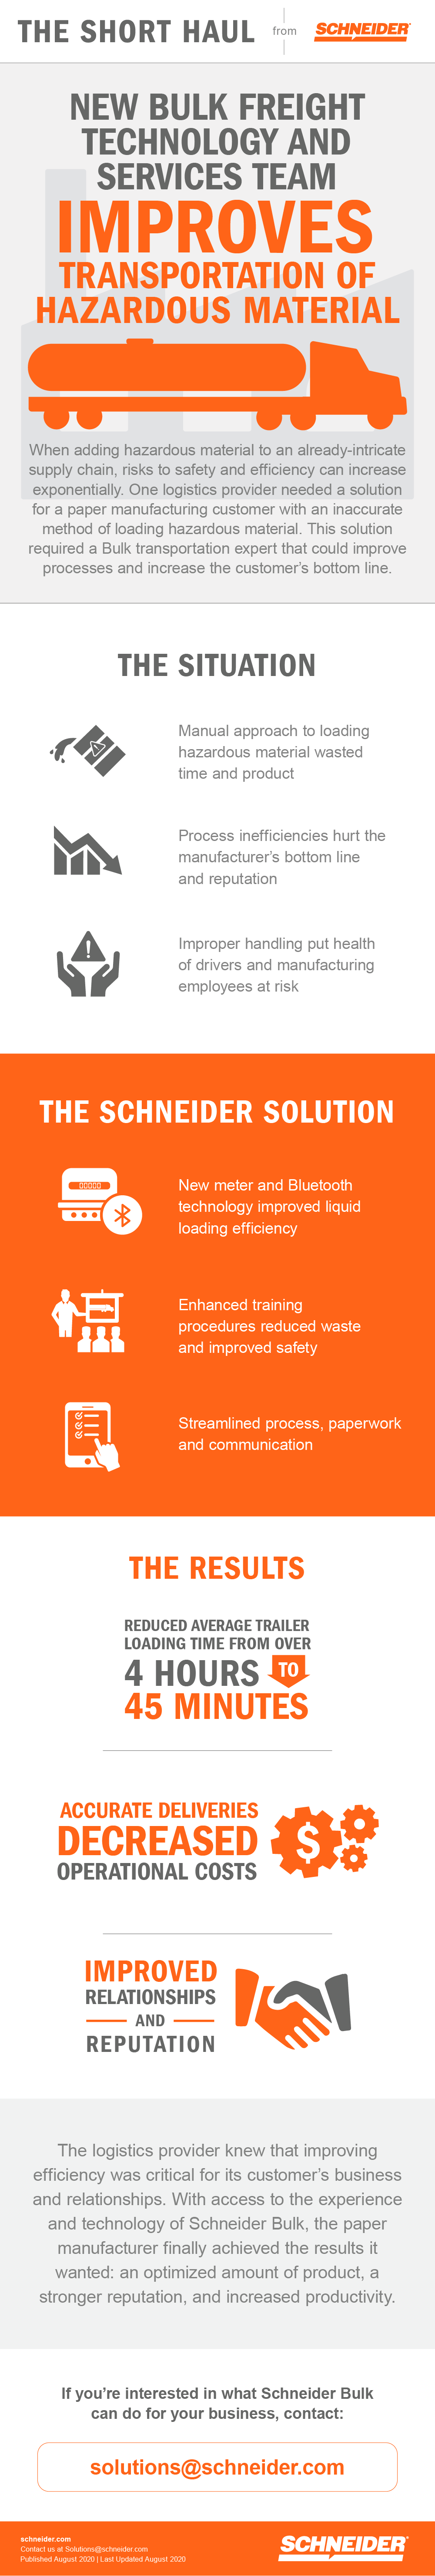 infographic showing how Schneider devised a unique bulk transportation solution that allowed a paper manufacturer to safely transport hazardous material & increase efficiency.